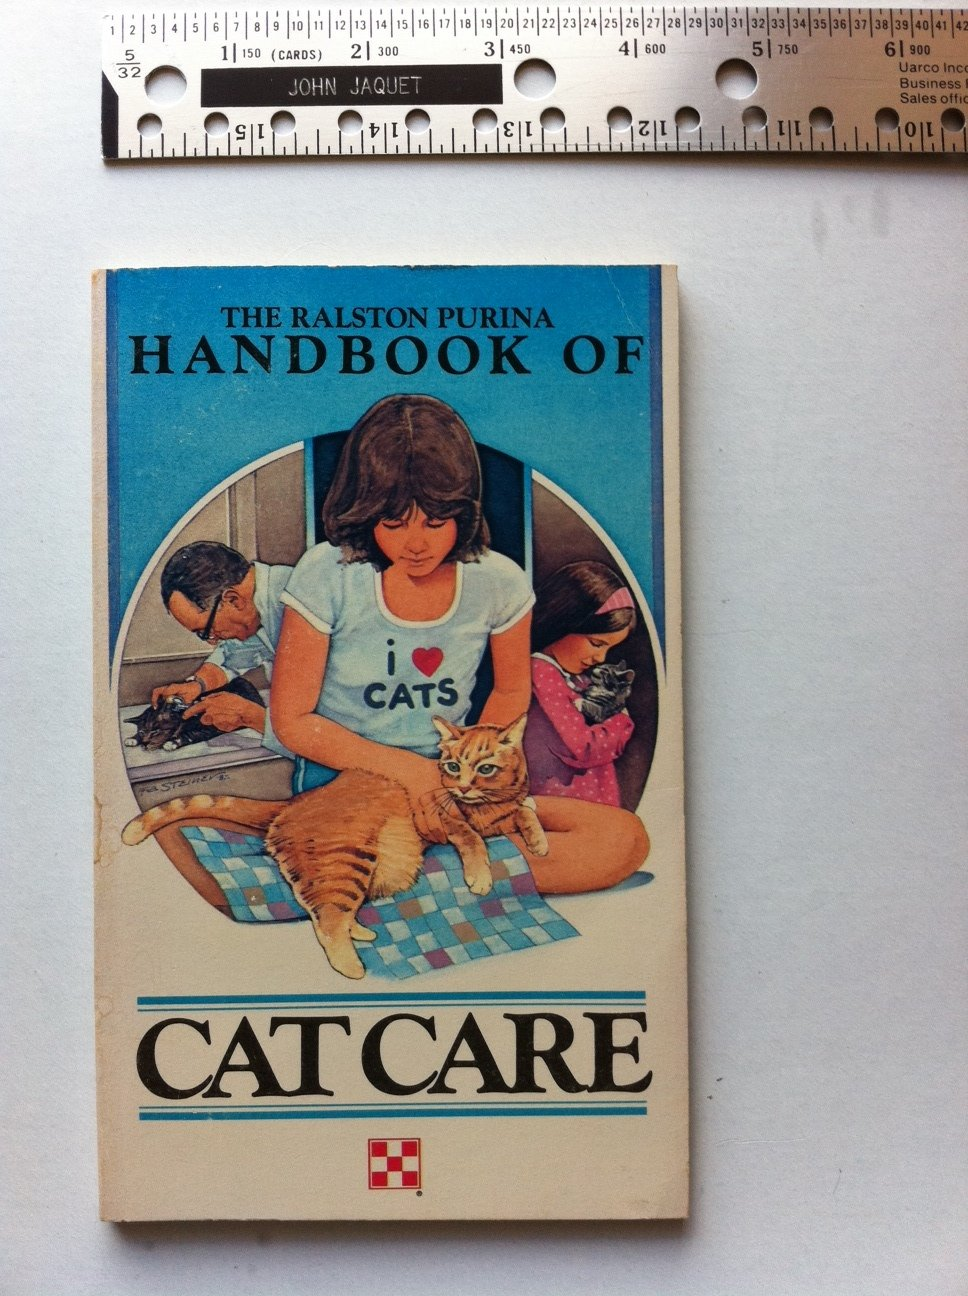 The Ralston Purina Handbook of Cat Care